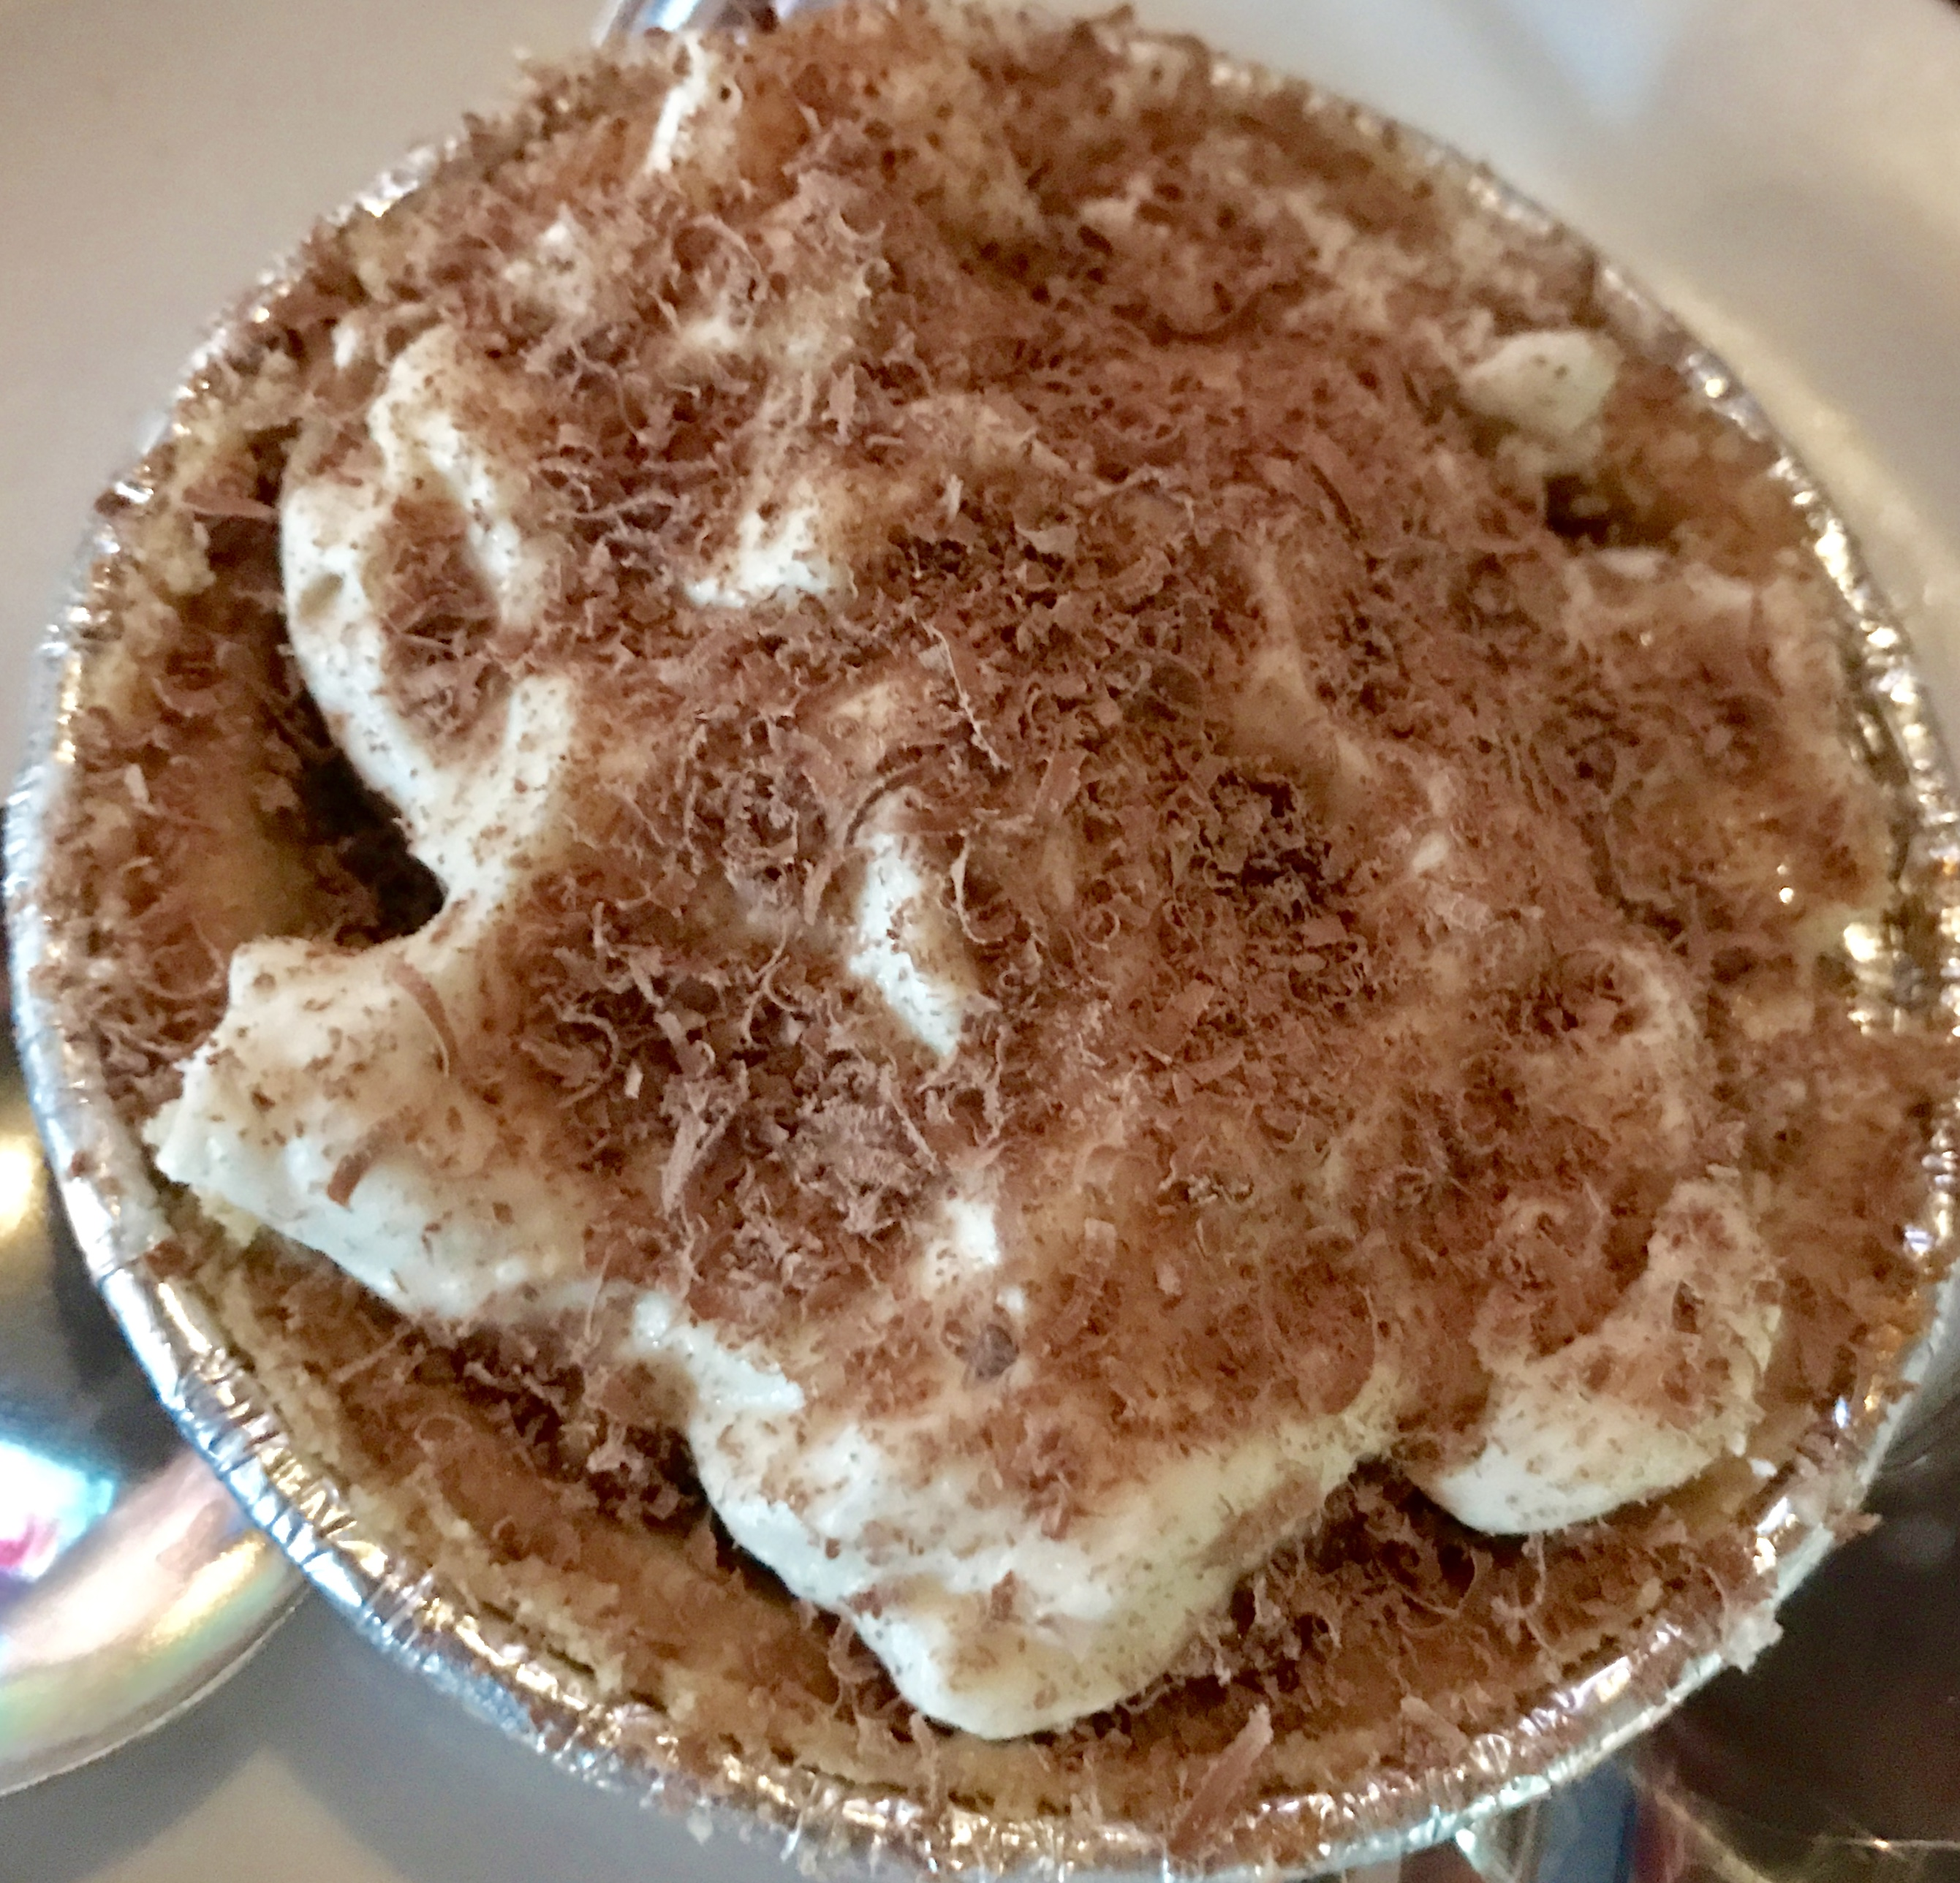 The Galley - Banana Toffee Pie